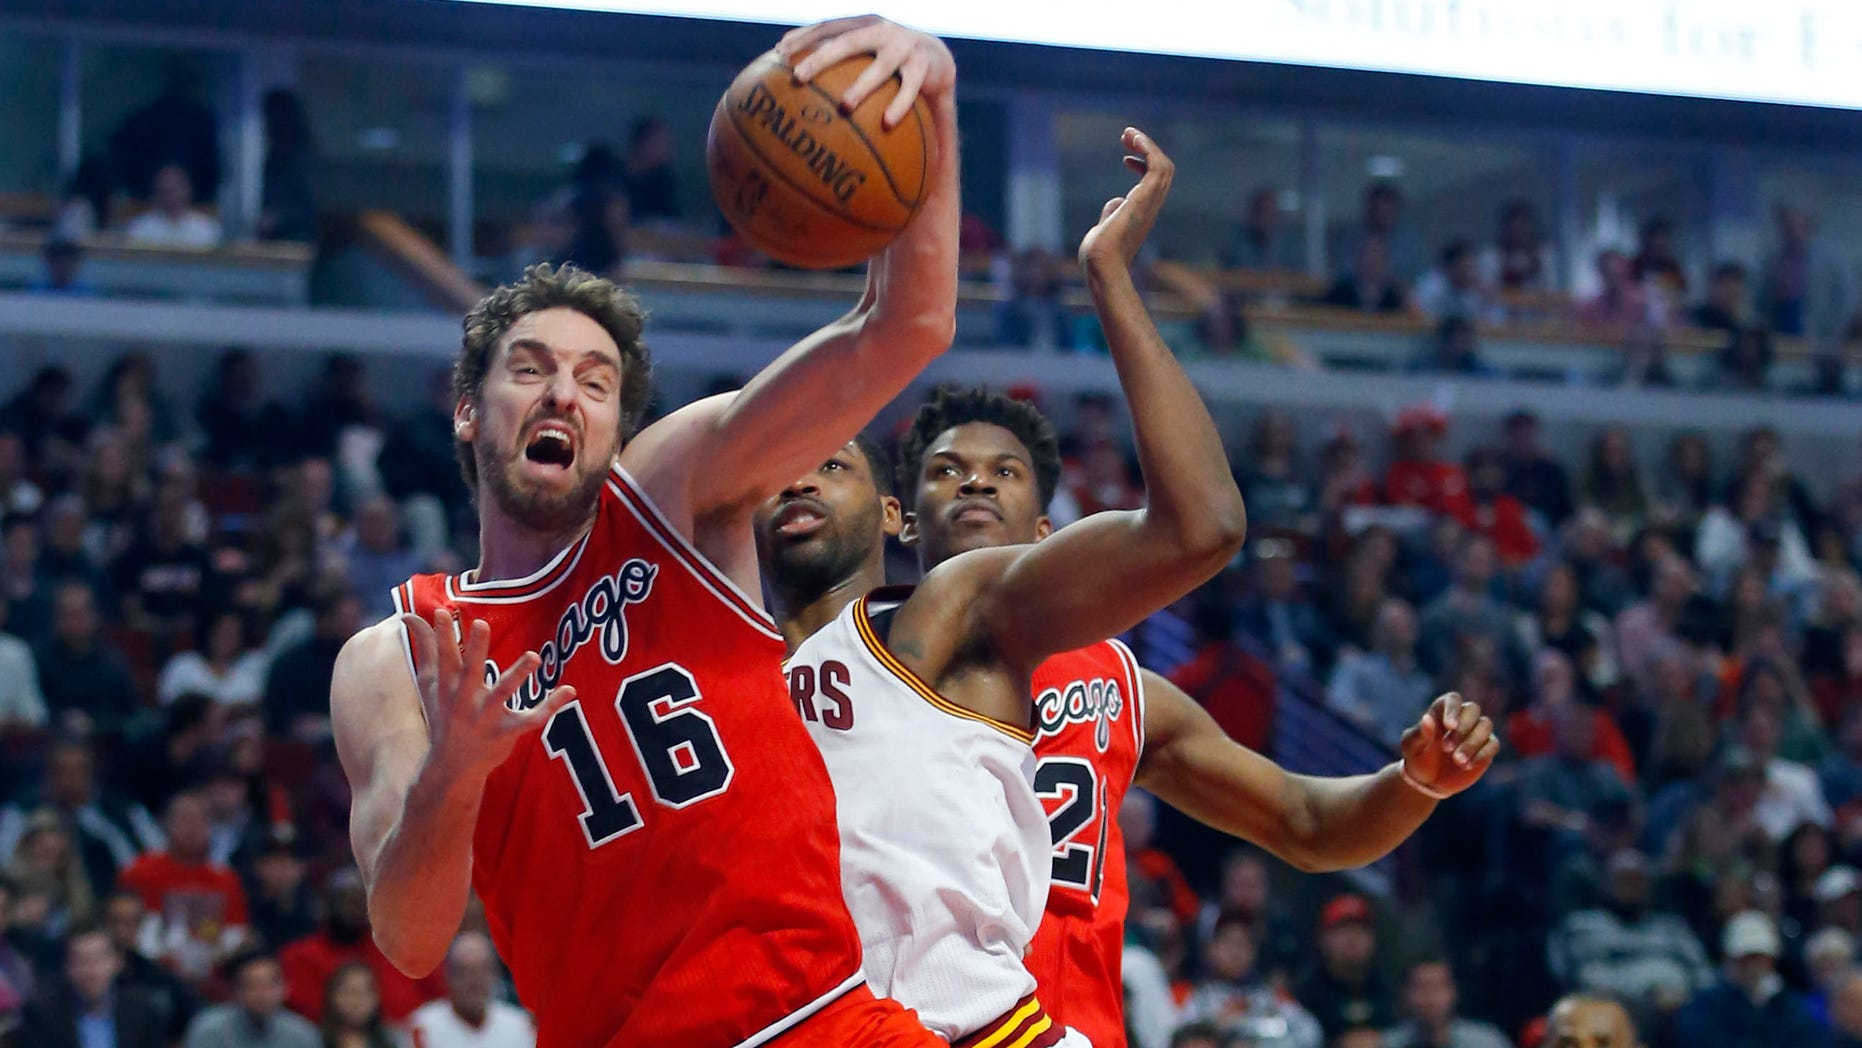 Chicago Bulls center Pau Gasol during an NBA game in Chicago on April 9, 2016.